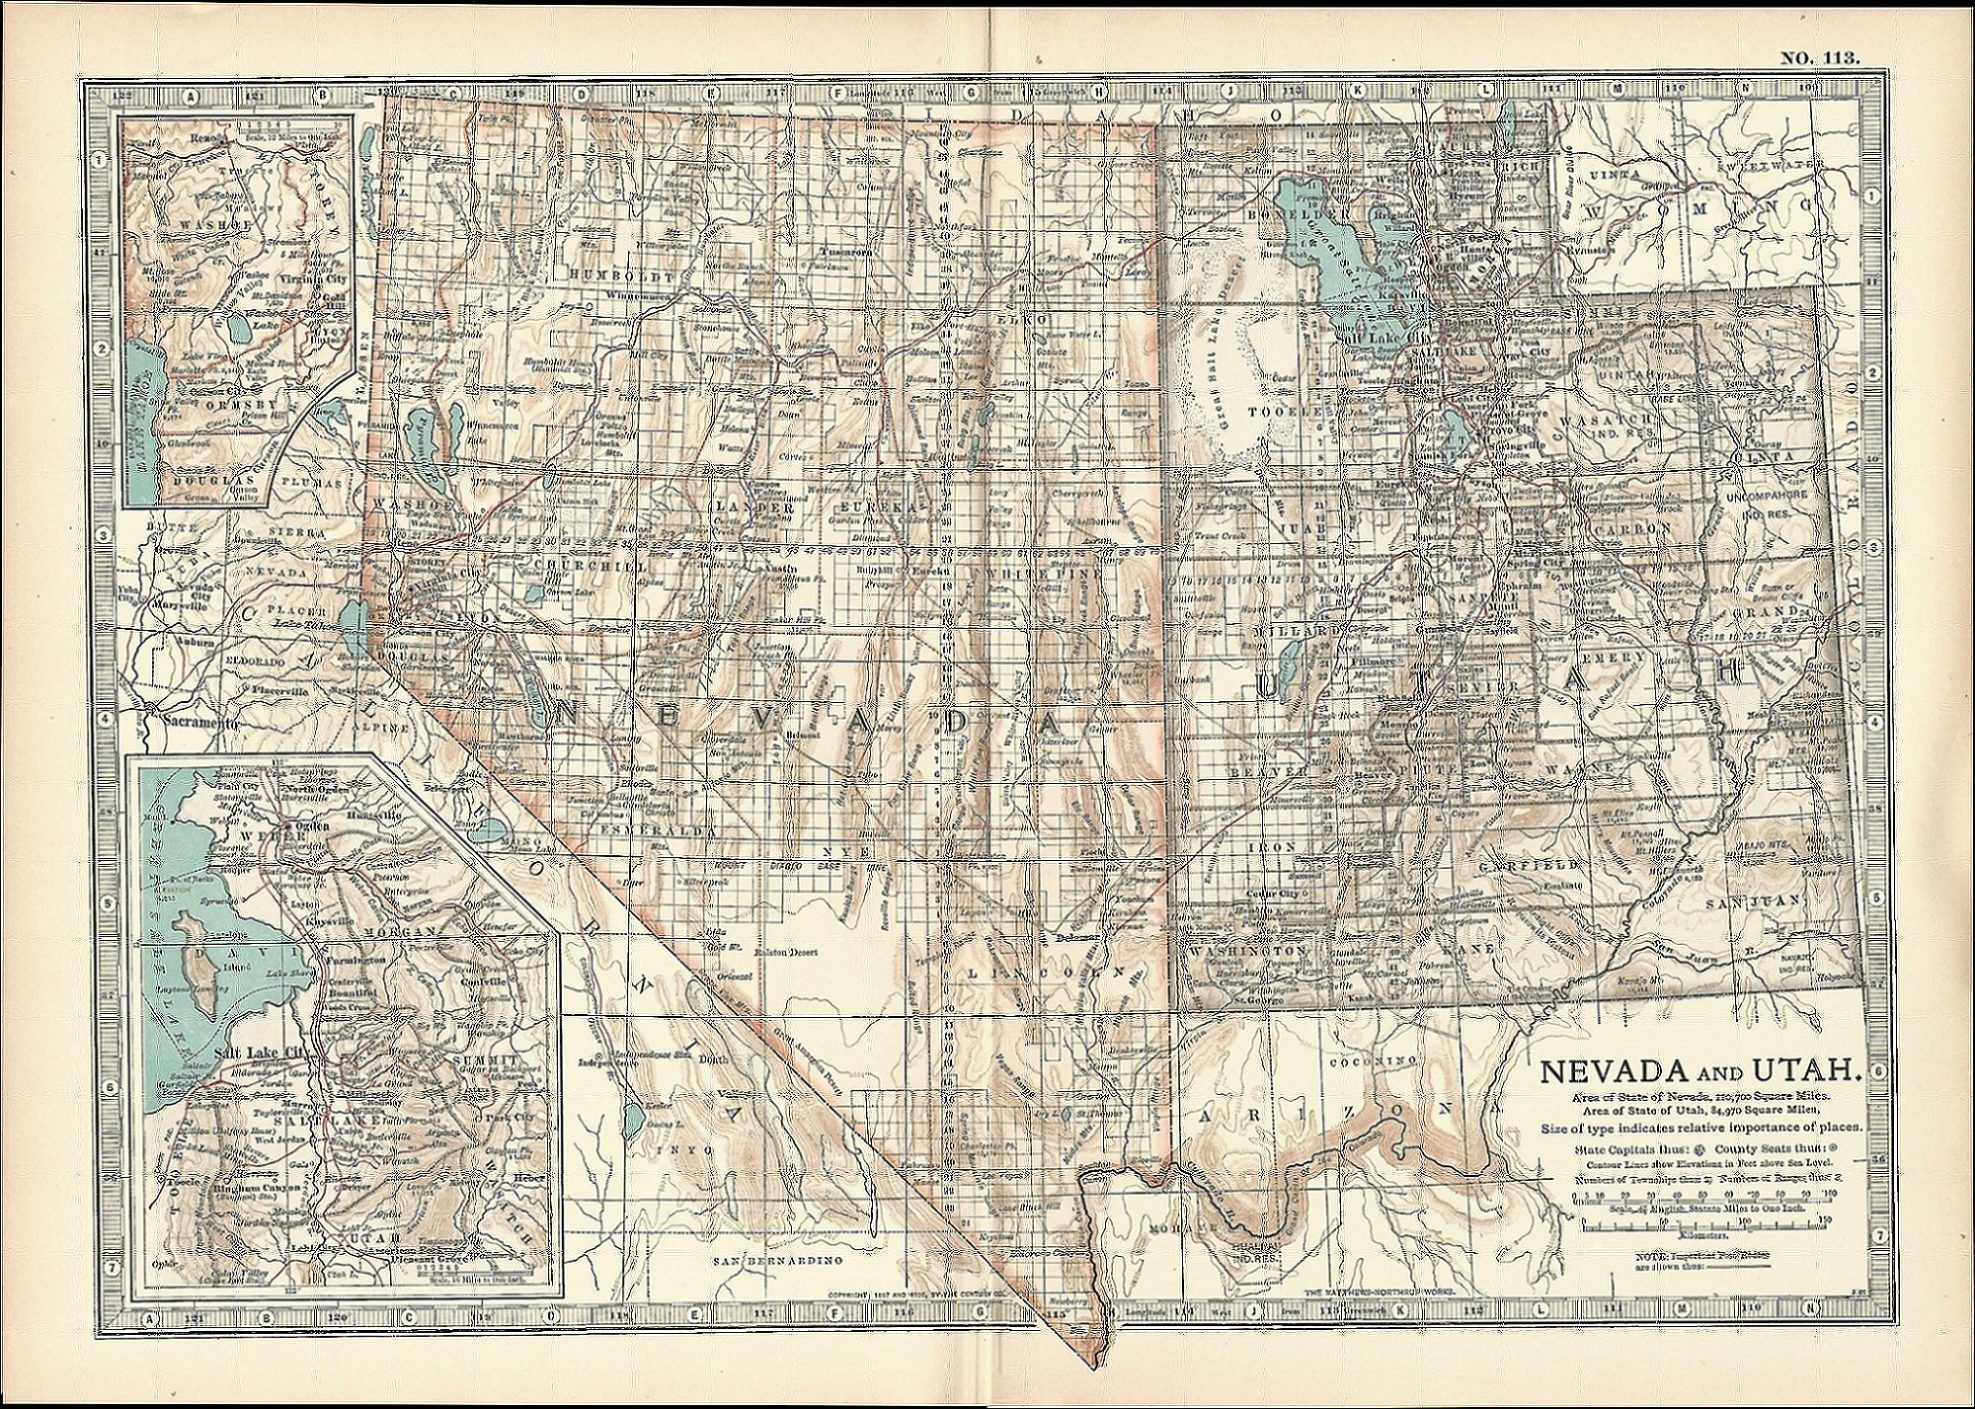 Nevada Utah Antique Map Encyclopedia Britannica 1903 Frontispiece